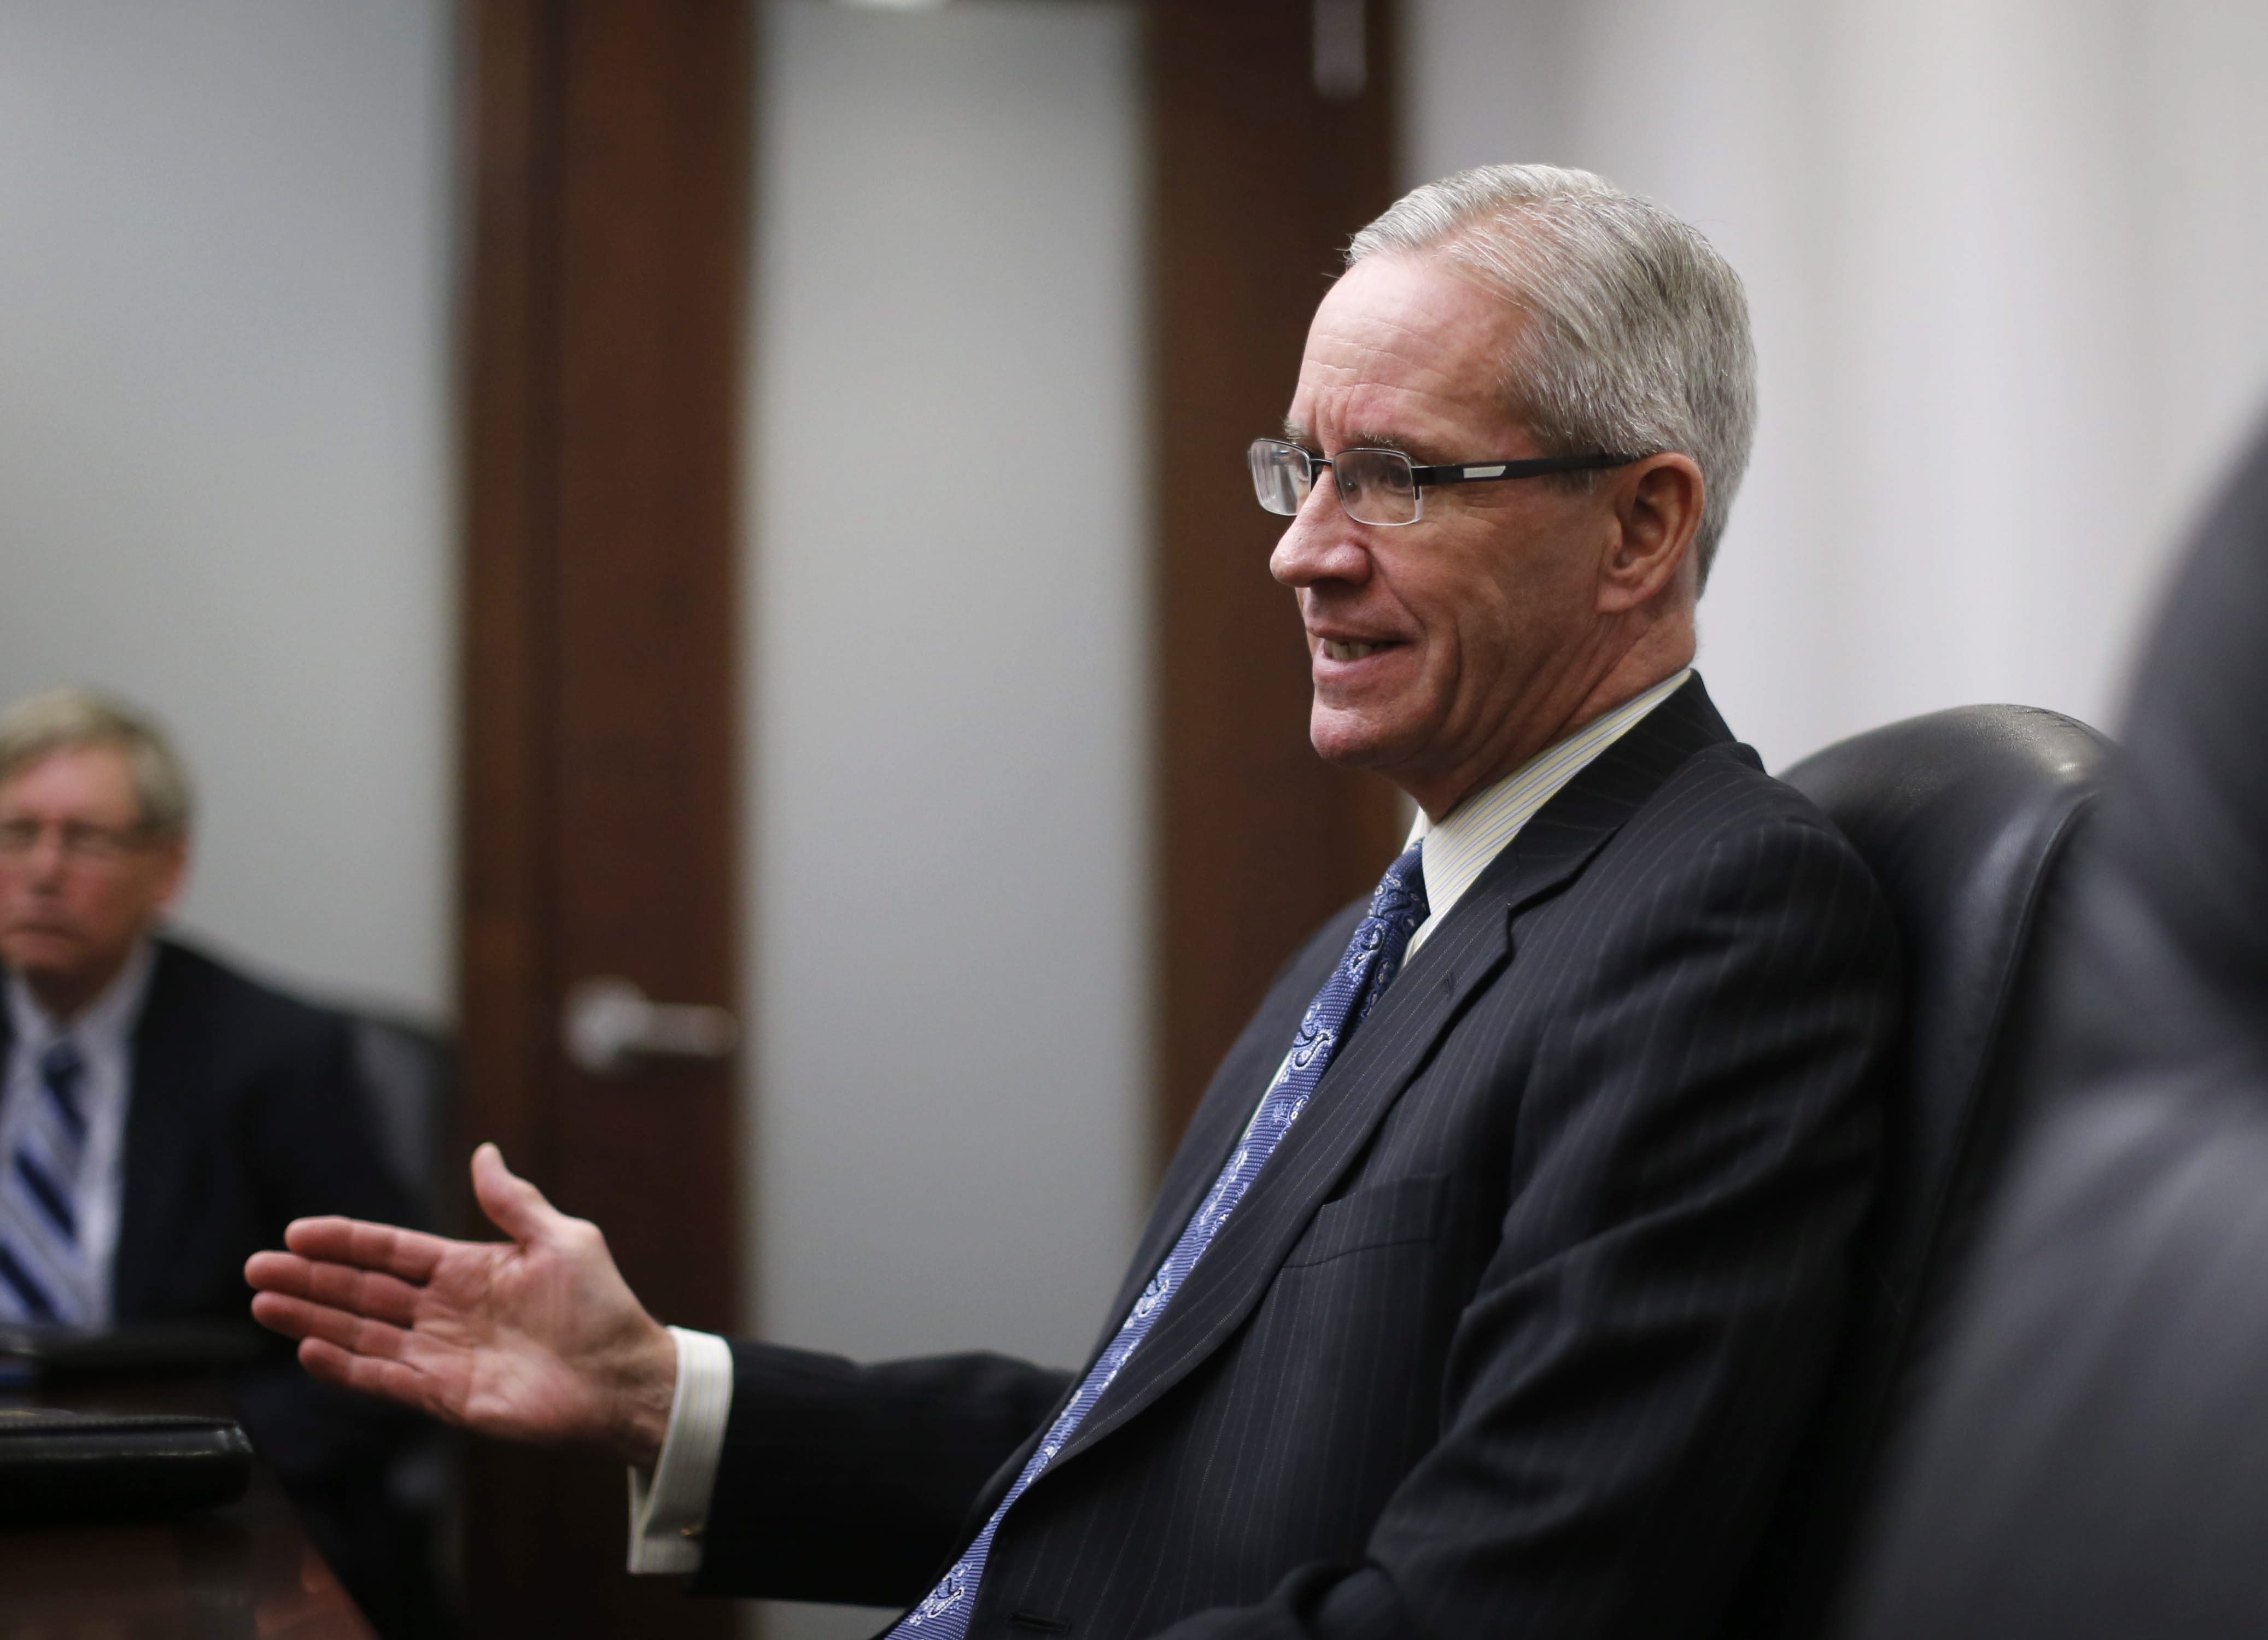 Daniel P. Forsyth, co-managing member of the Buffalo office for law firm Bond, Schoeneck and King, Monday, Jan. 4, 2016.  (Derek Gee/Buffalo News)